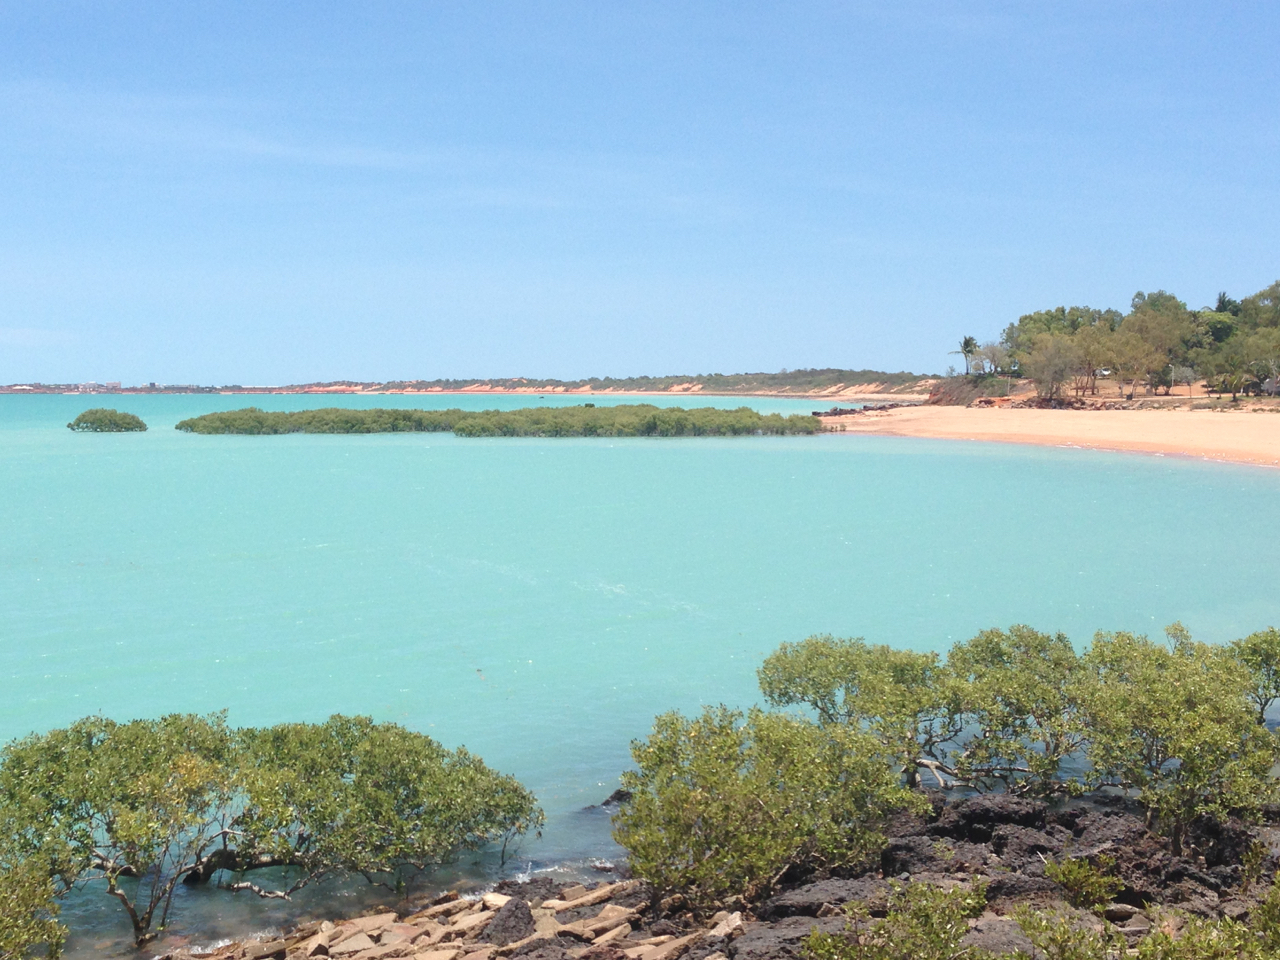 The milky azure waters of Roebuck Bay, Broome